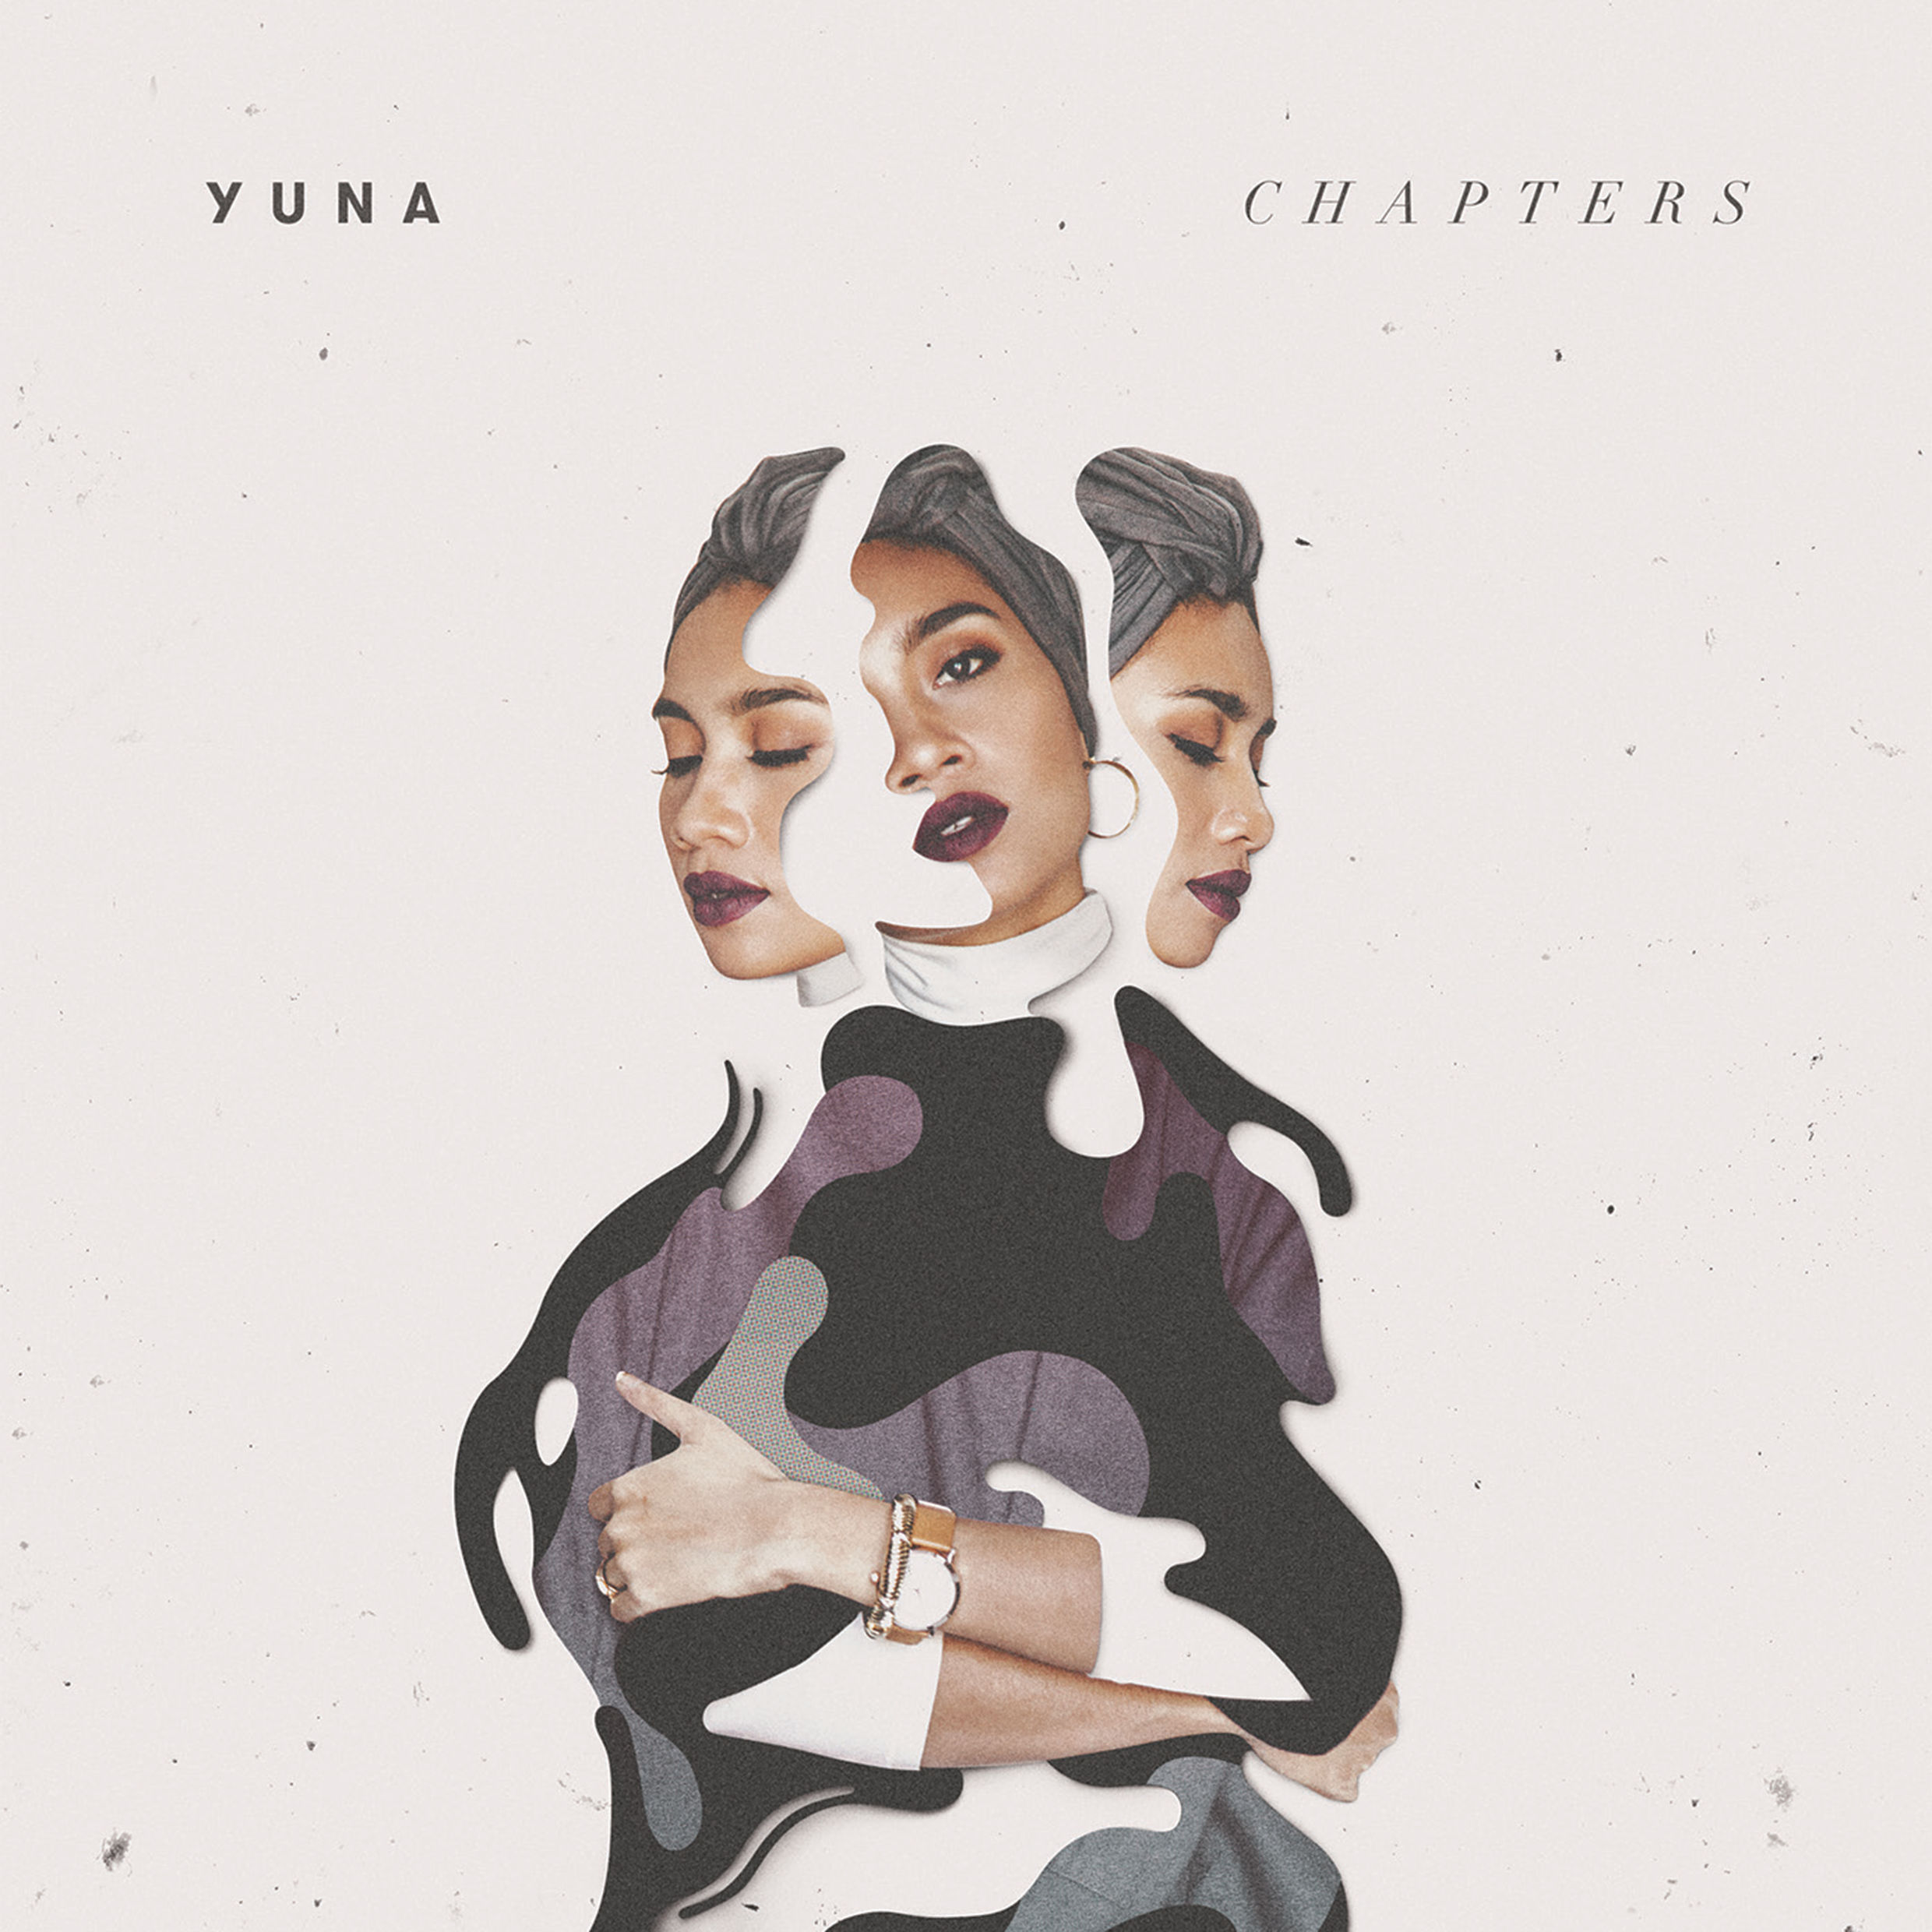 Yuna-Chapters-Deluxe-2016-2480x2480